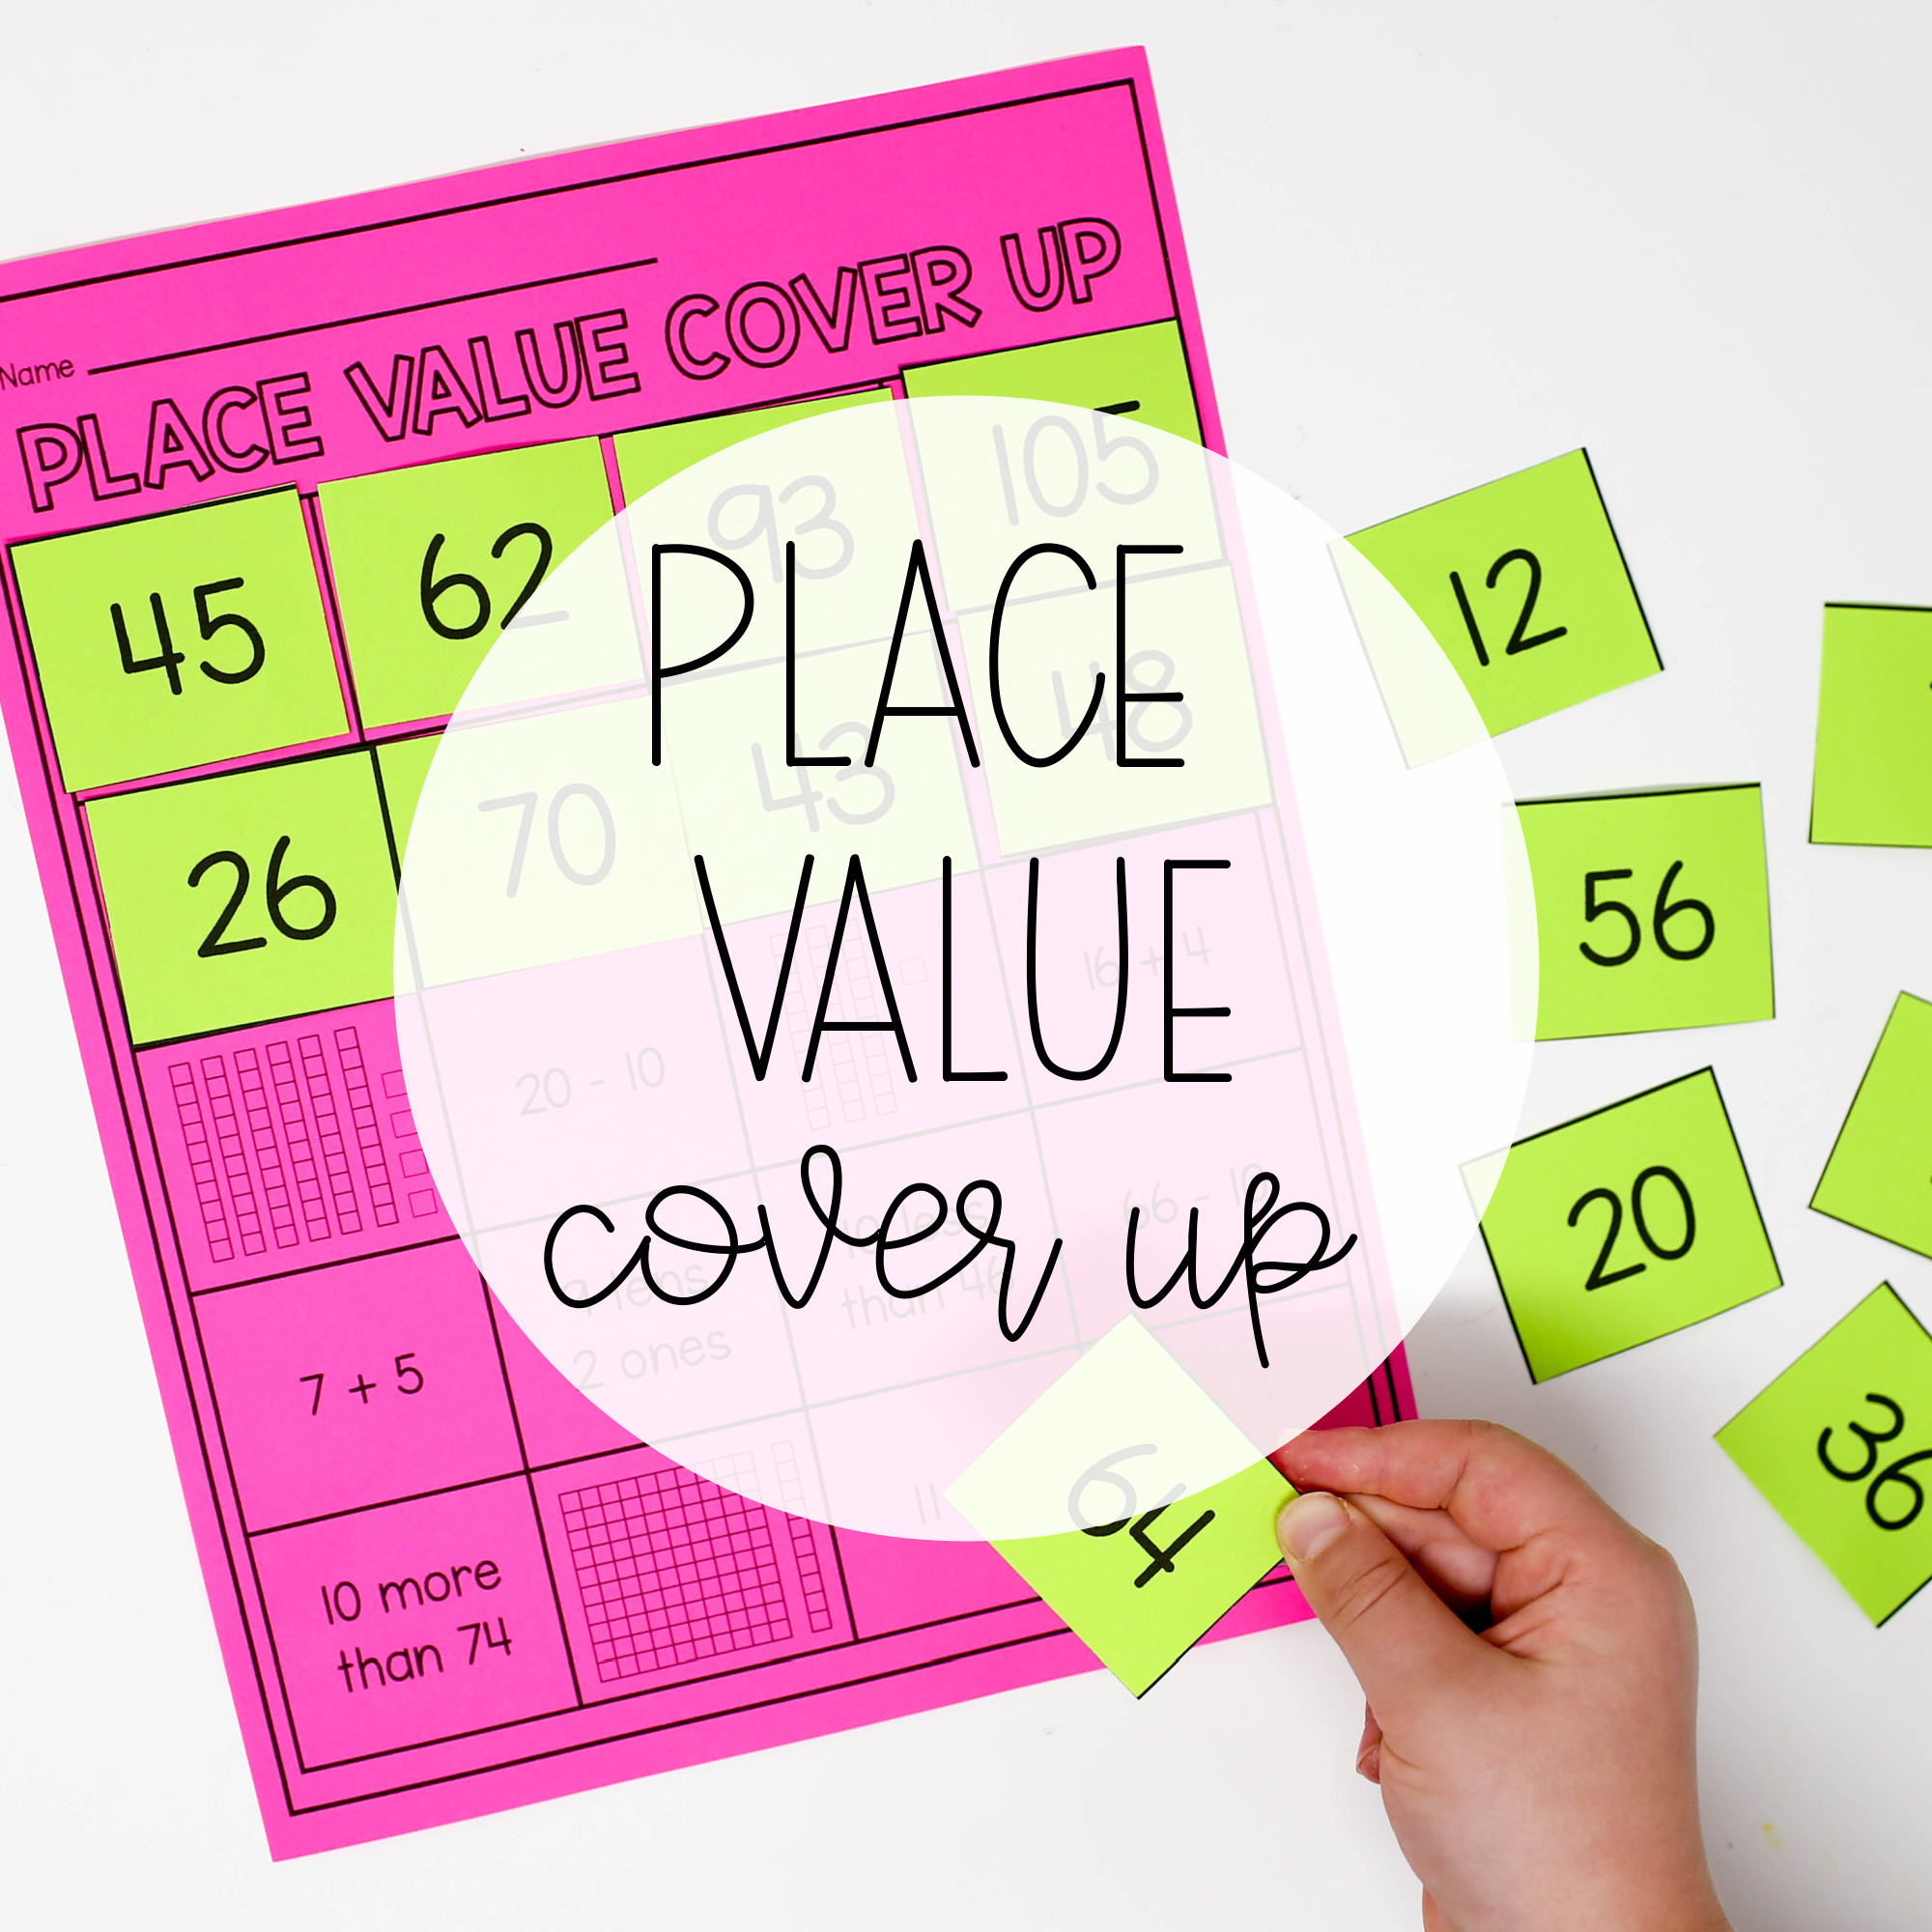 Place Value Cover Up